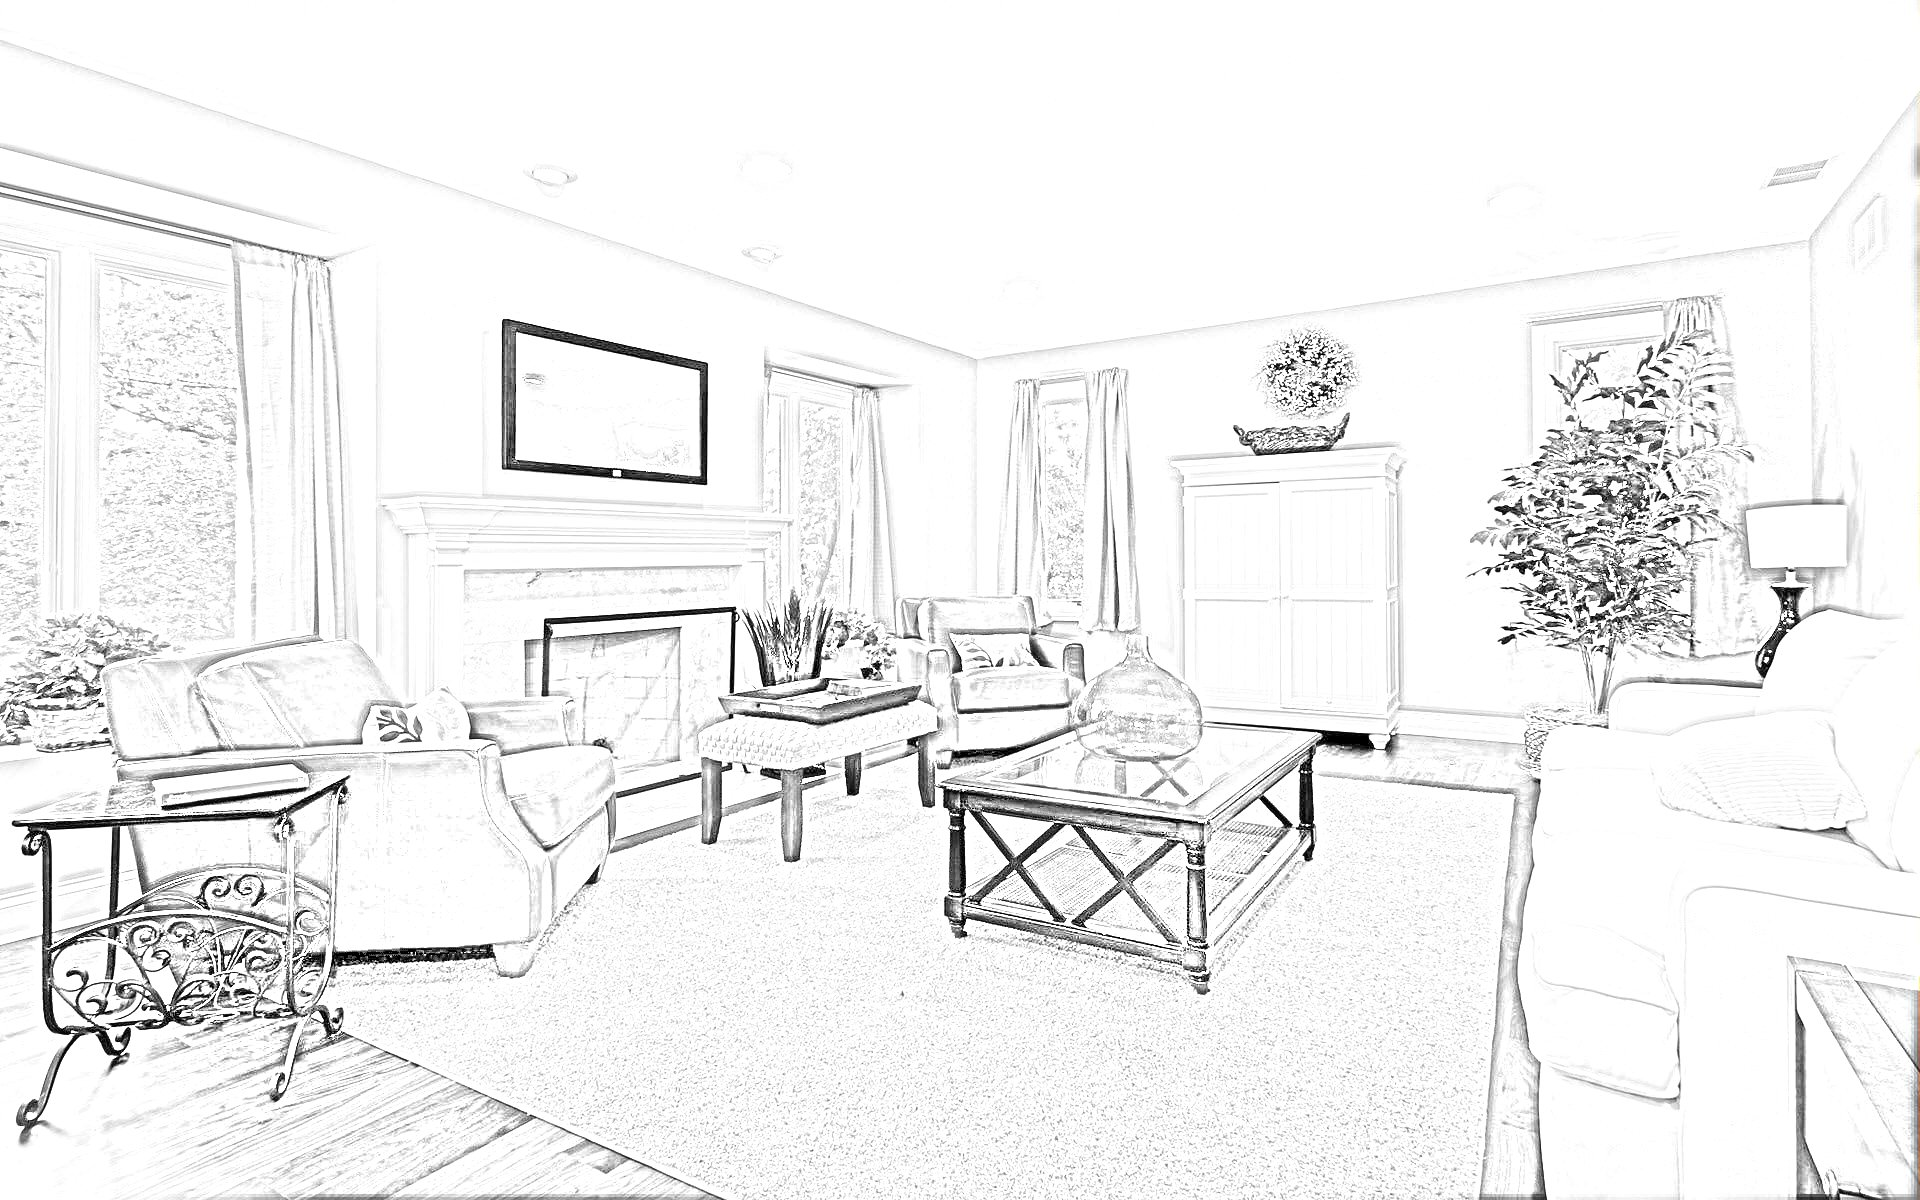 Drawn bedroom basic interior design Bedroom Drawing Cafeteria Bedroom On